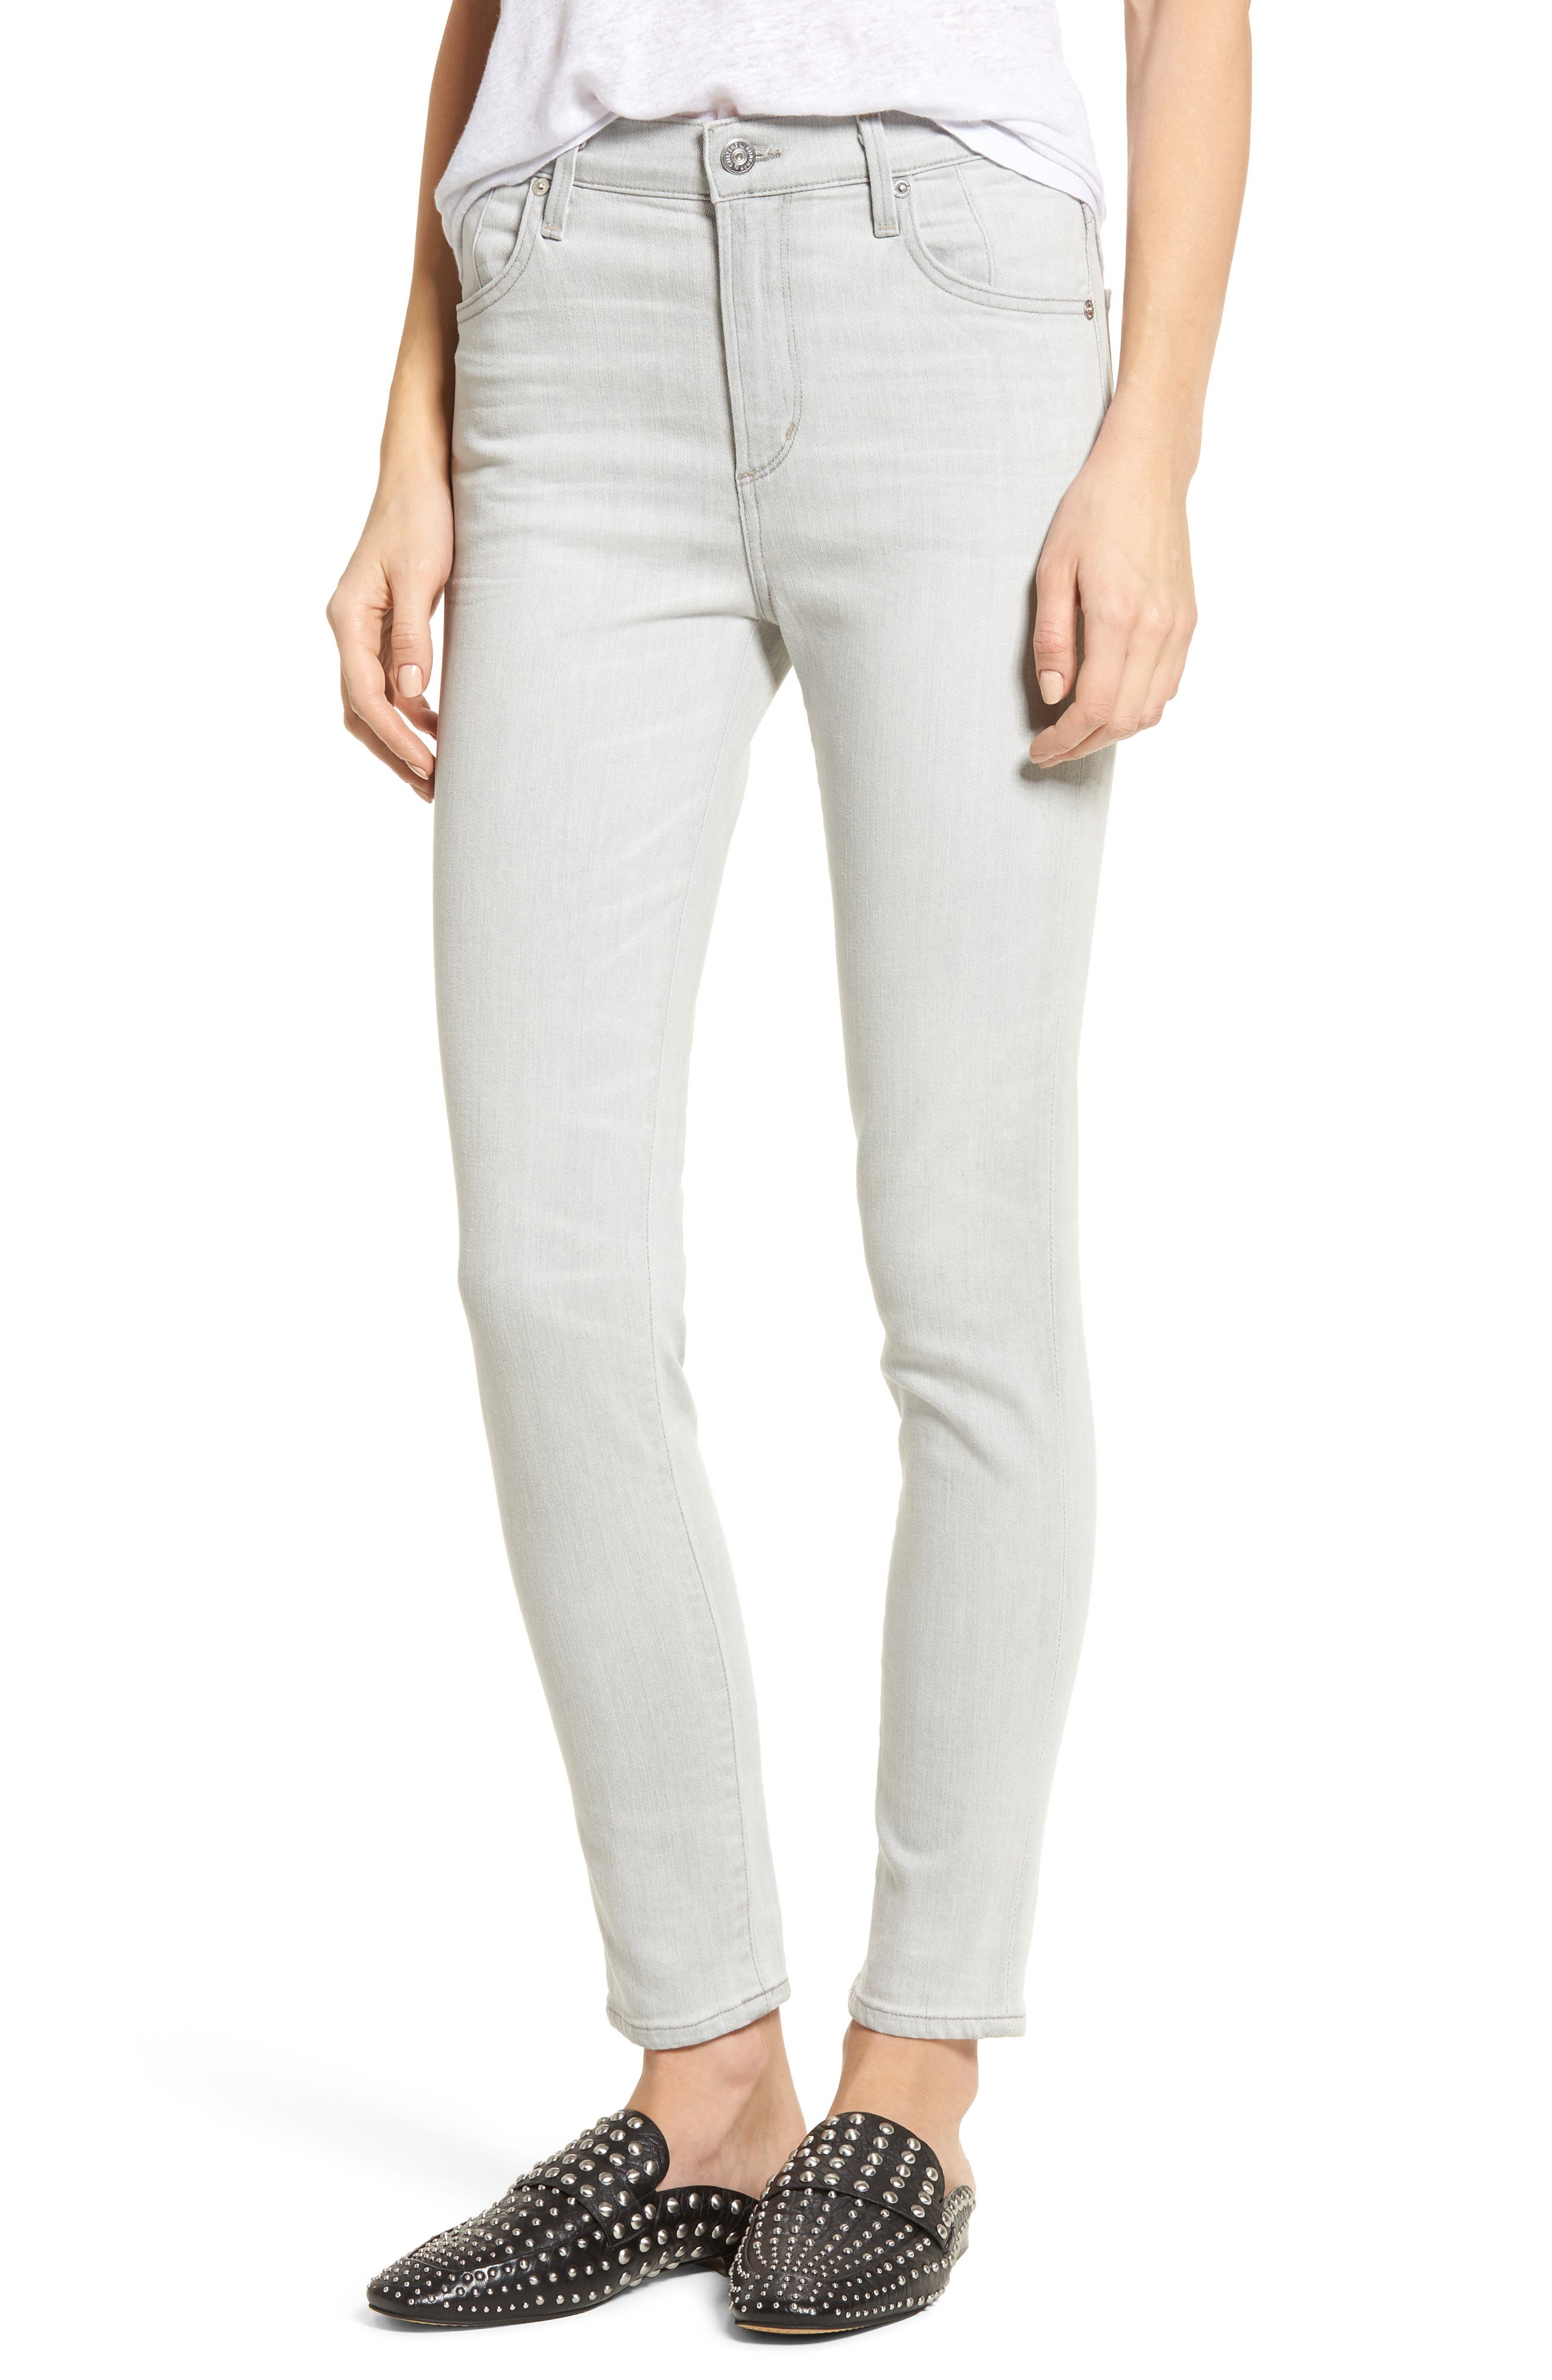 Carlie High Waist Ankle Skinny Jeans,                         Main,                         color, GREYSTONE